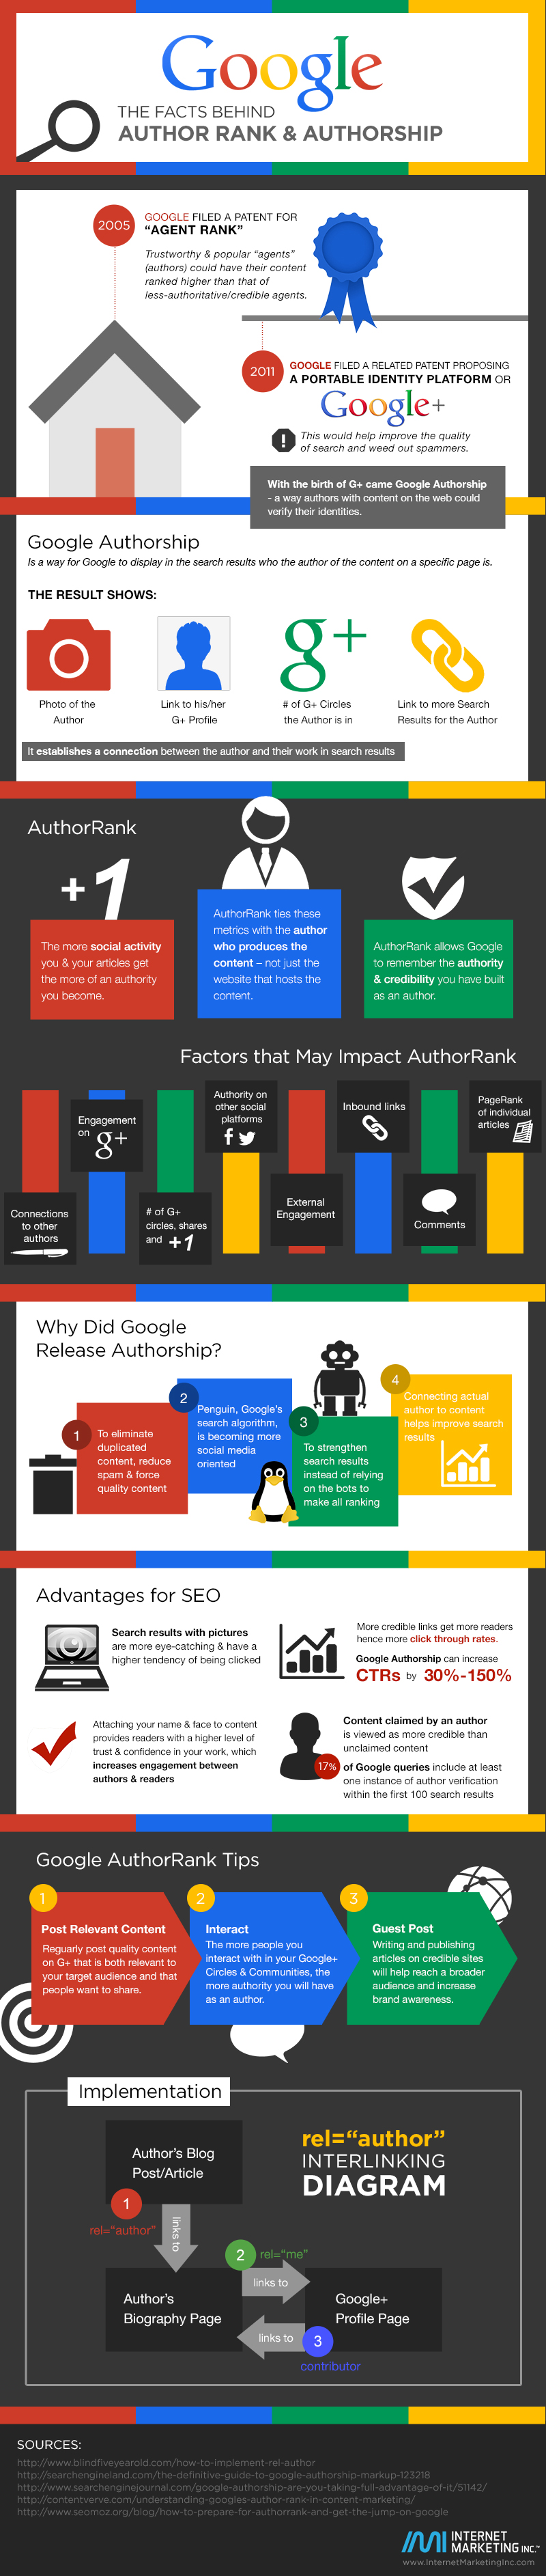 The Benefits for You and Your Business of Google Author Rank and Authorship